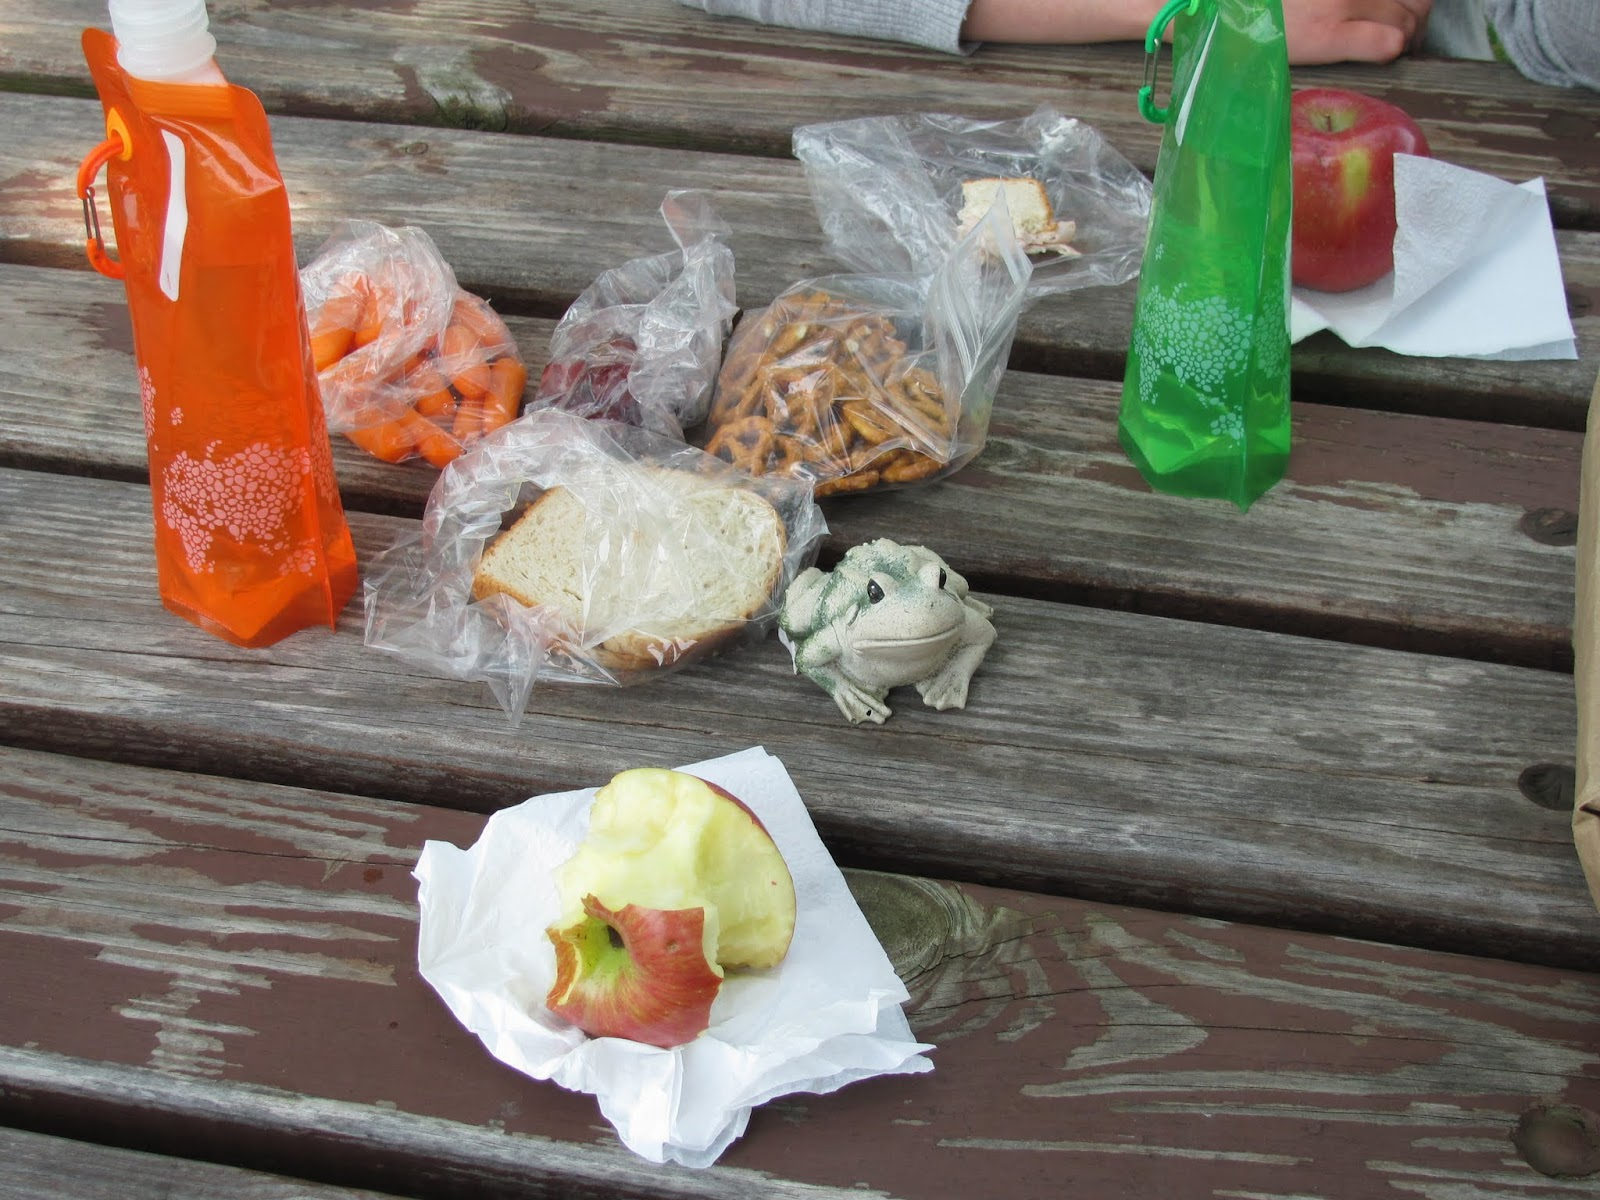 Frog poses with our road lunch eaten at a rest stop in Illinois.  Sandwiches, fruit, carrots, and pretzels are on the menu